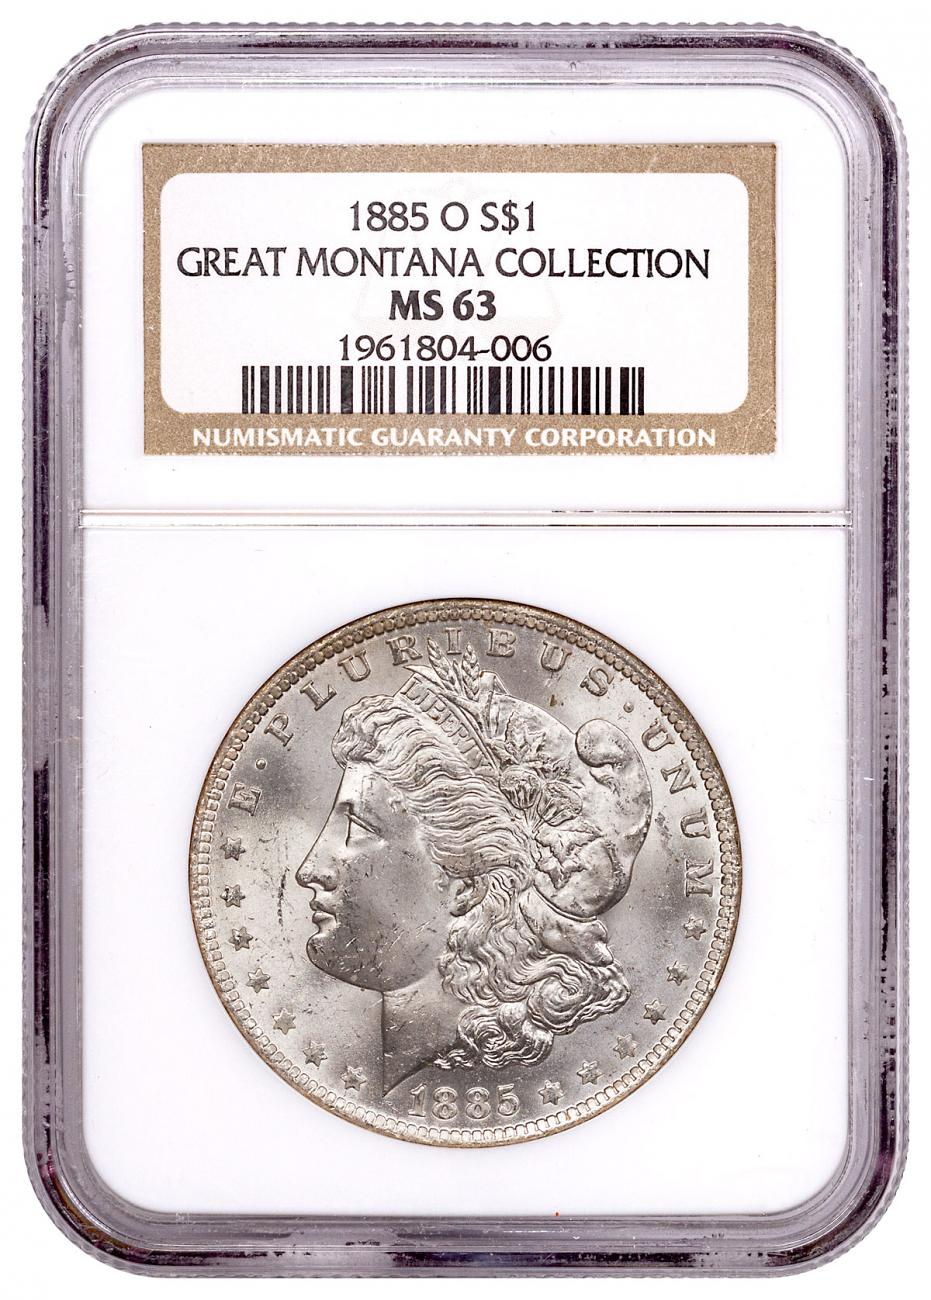 1885-O Morgan Silver Dollar From the Great Montana Collection NGC MS63 Toned CPCR 4006